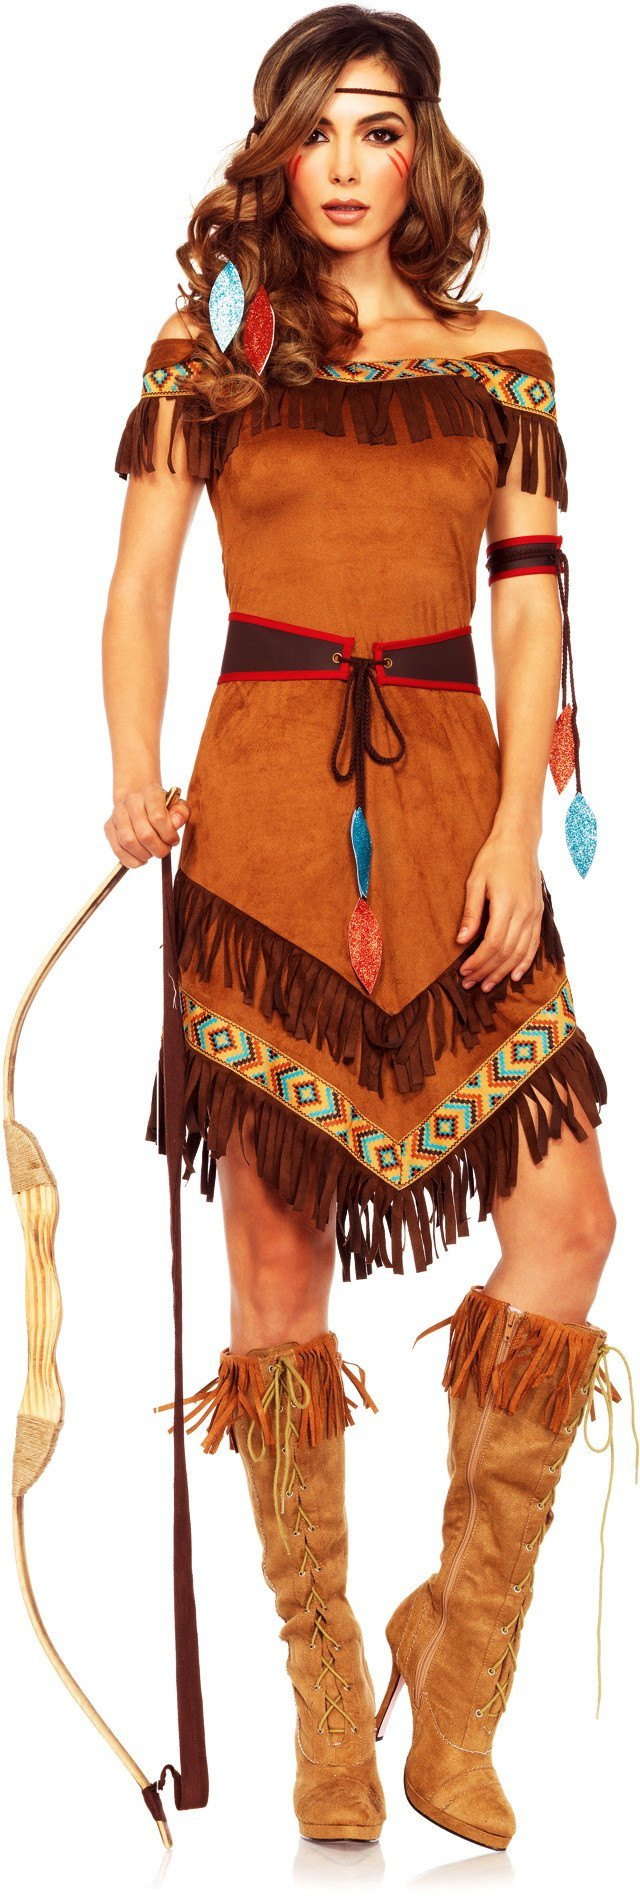 sc 1 st  Disguises Costumes & Indian Native Princess Adult Hire Costume